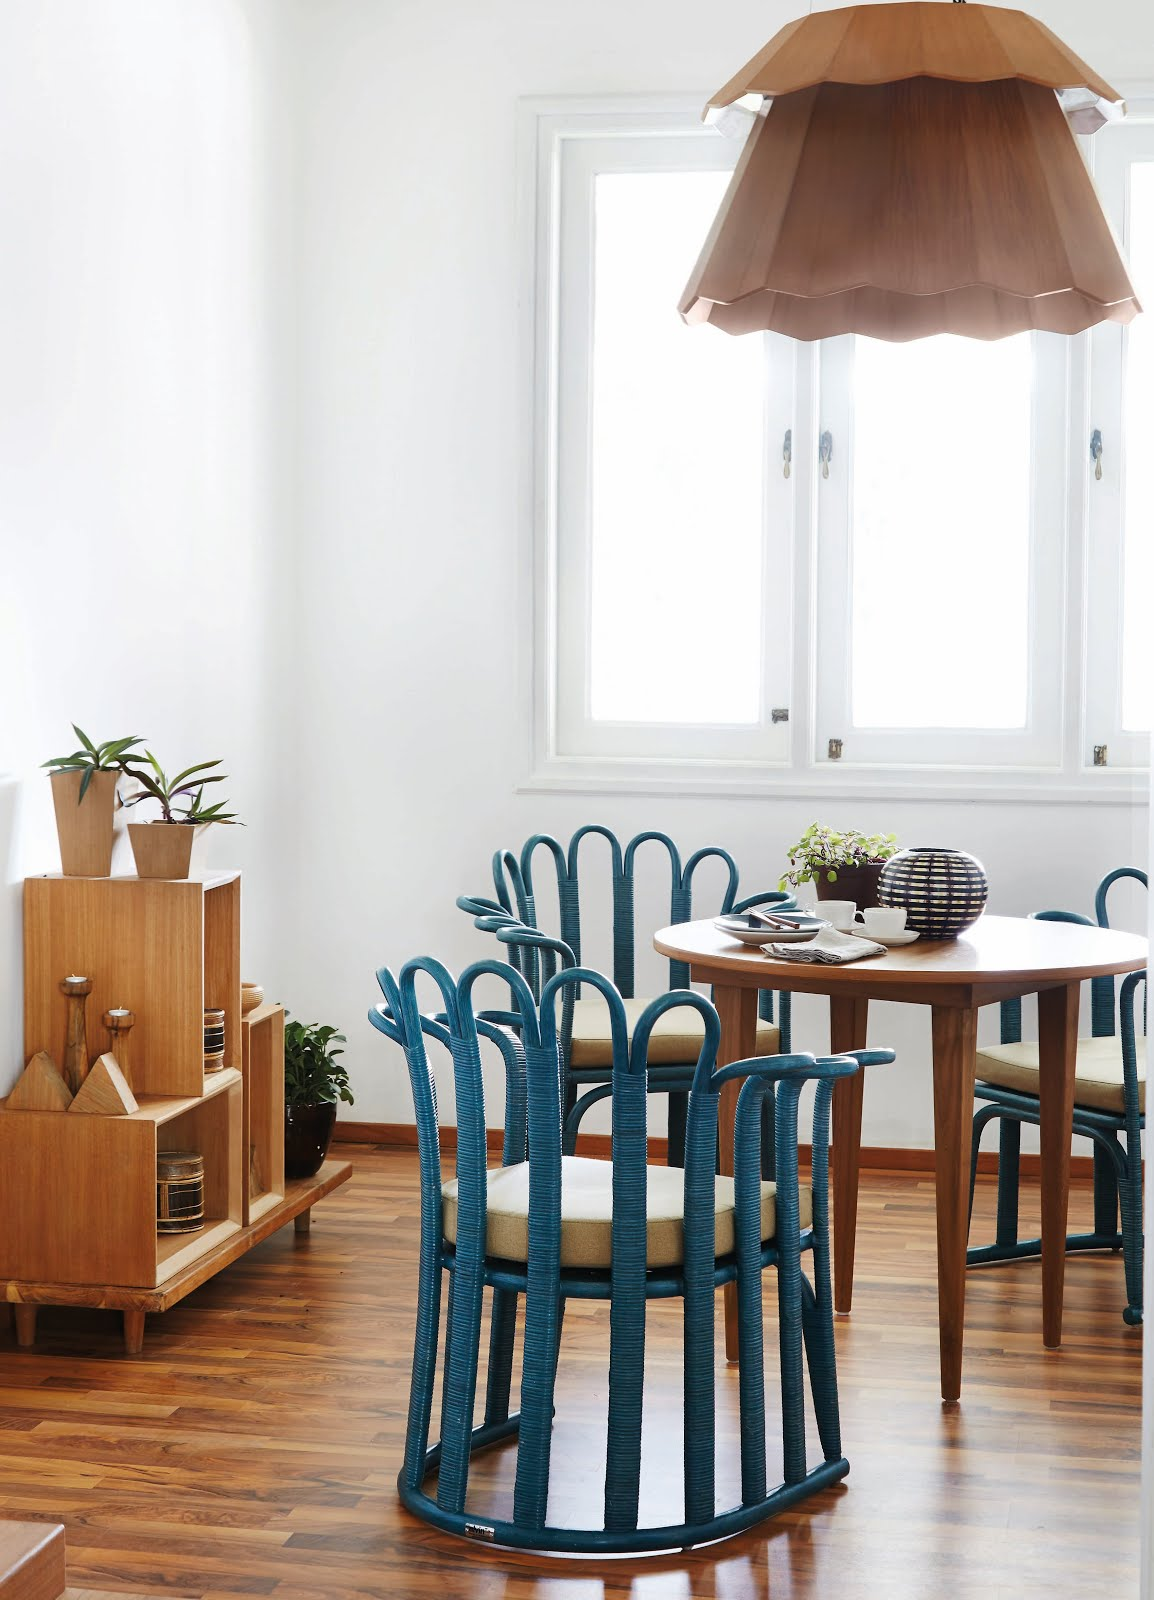 Rattan Chairs Manufactured By Schuetz Furniture Designed By Alvin T  Published By Styleu0026Decor Magazine 2014